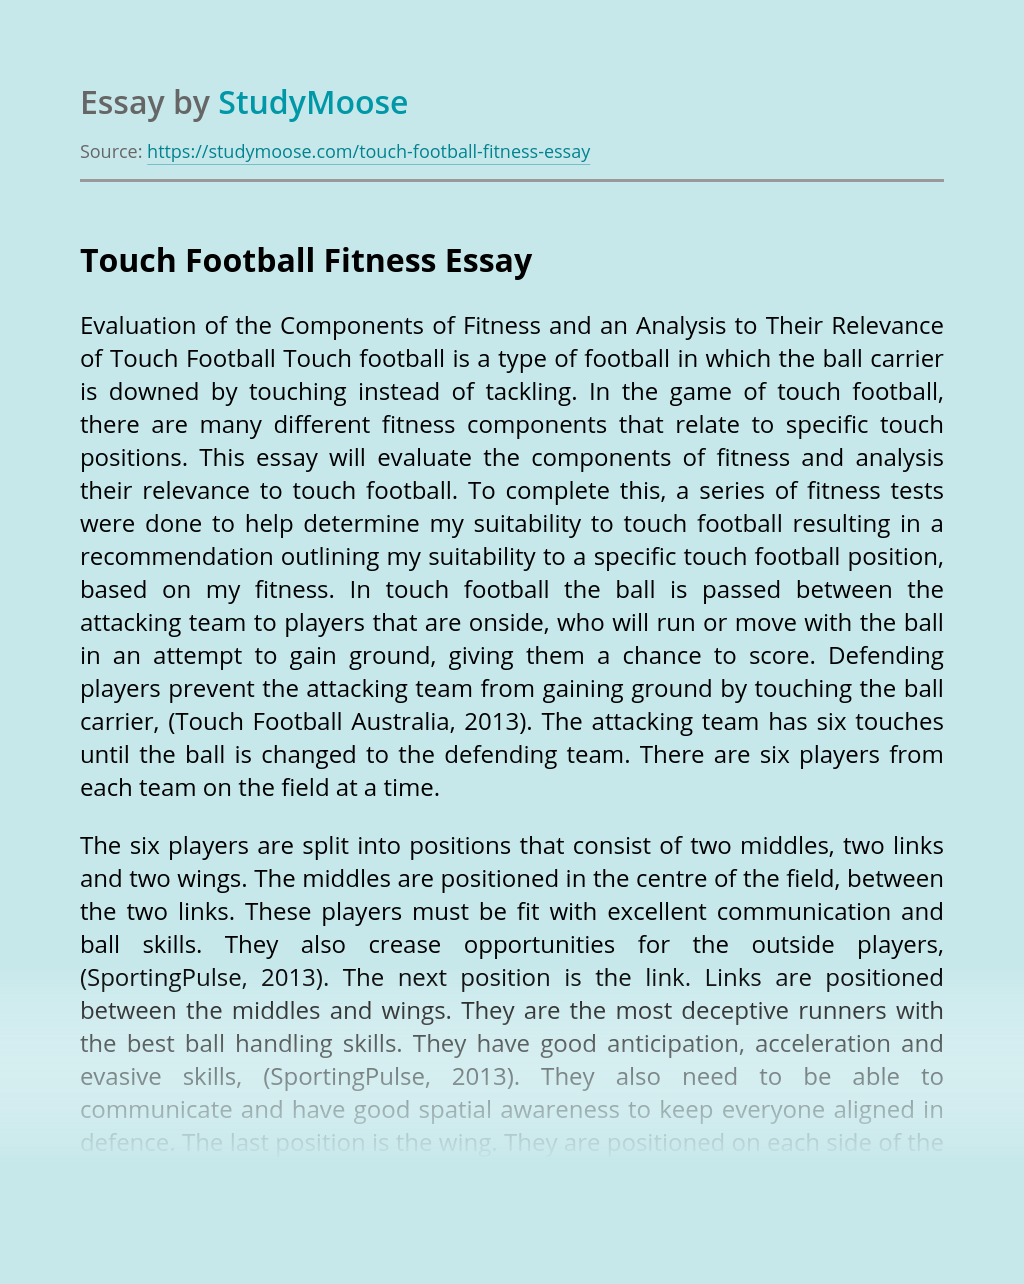 Touch Football Fitness